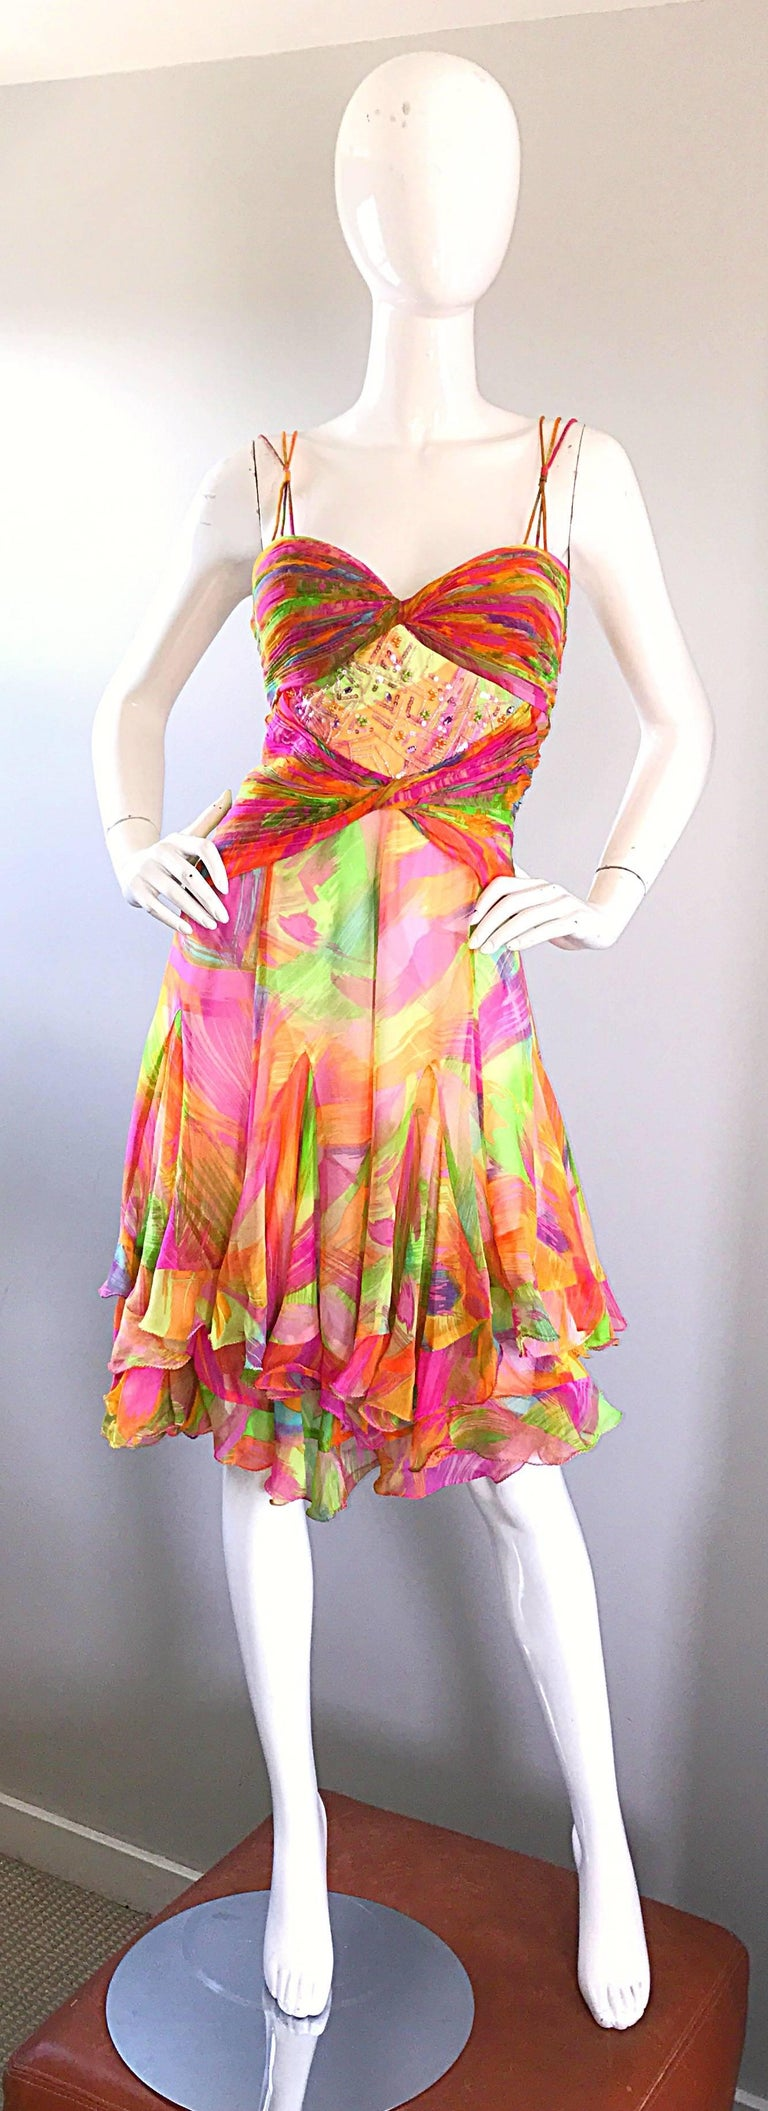 Insanely beautiful vintage (brand new with tags) 1990s DIANE FREIS bright neon silk chiffon dress! Features vibrant colors of pink, green, blue, orange and fuchsia throughout. Flattering ruched detail at stomach and bust. Triple strand straps at